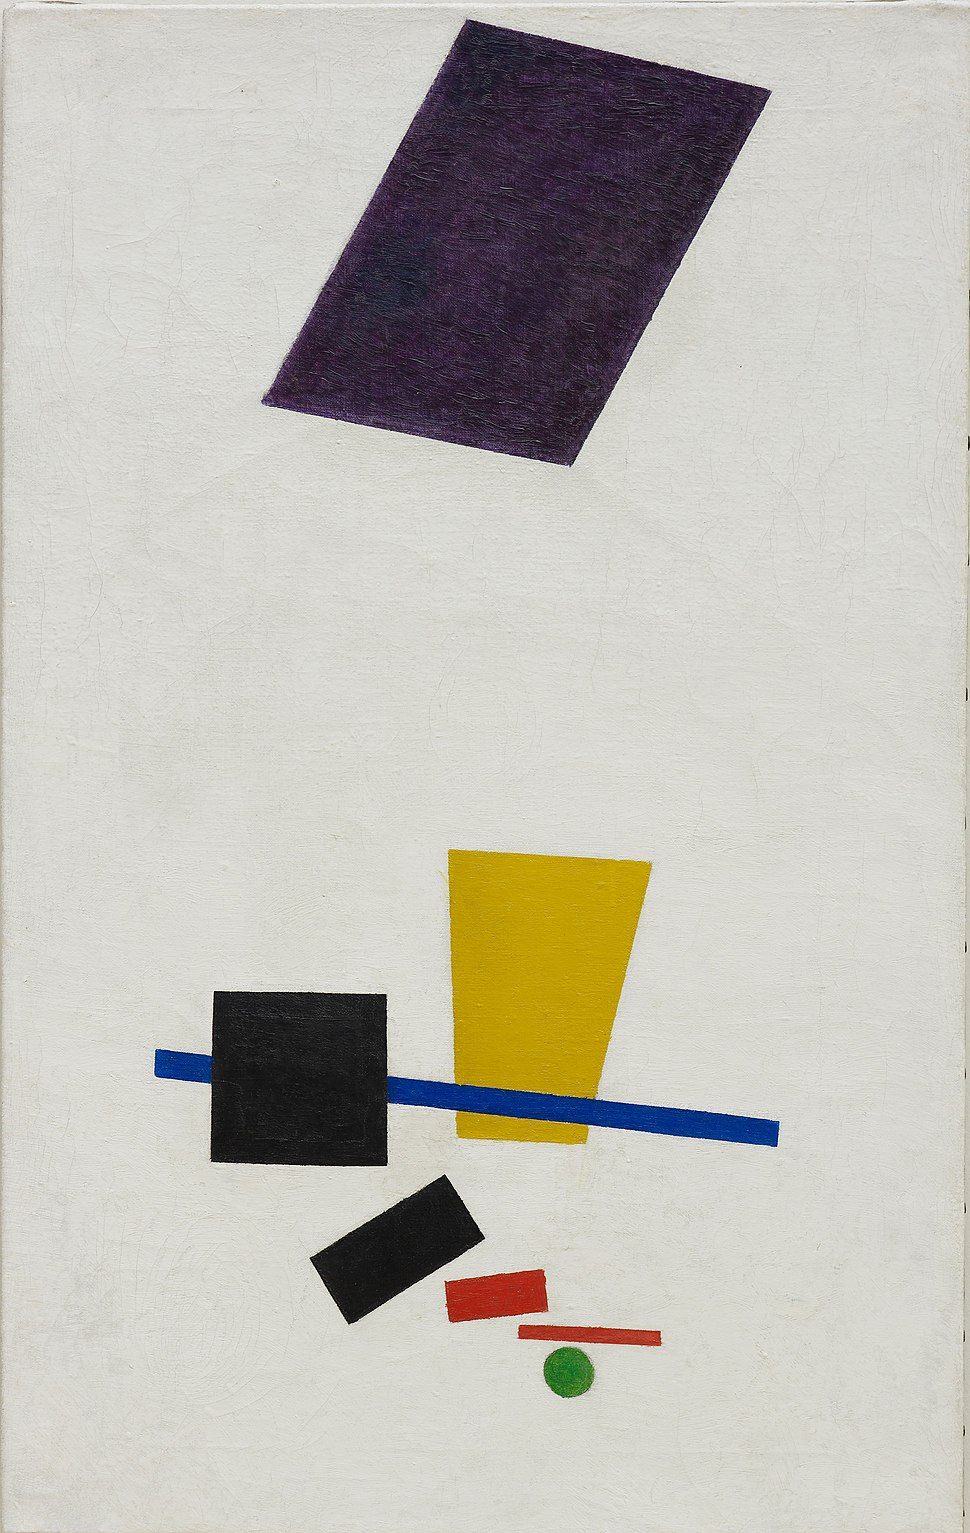 Painterly Realism of a Football Player – Color Masses in the 4th Dimension (Malevich, 1915) - Google Art Project